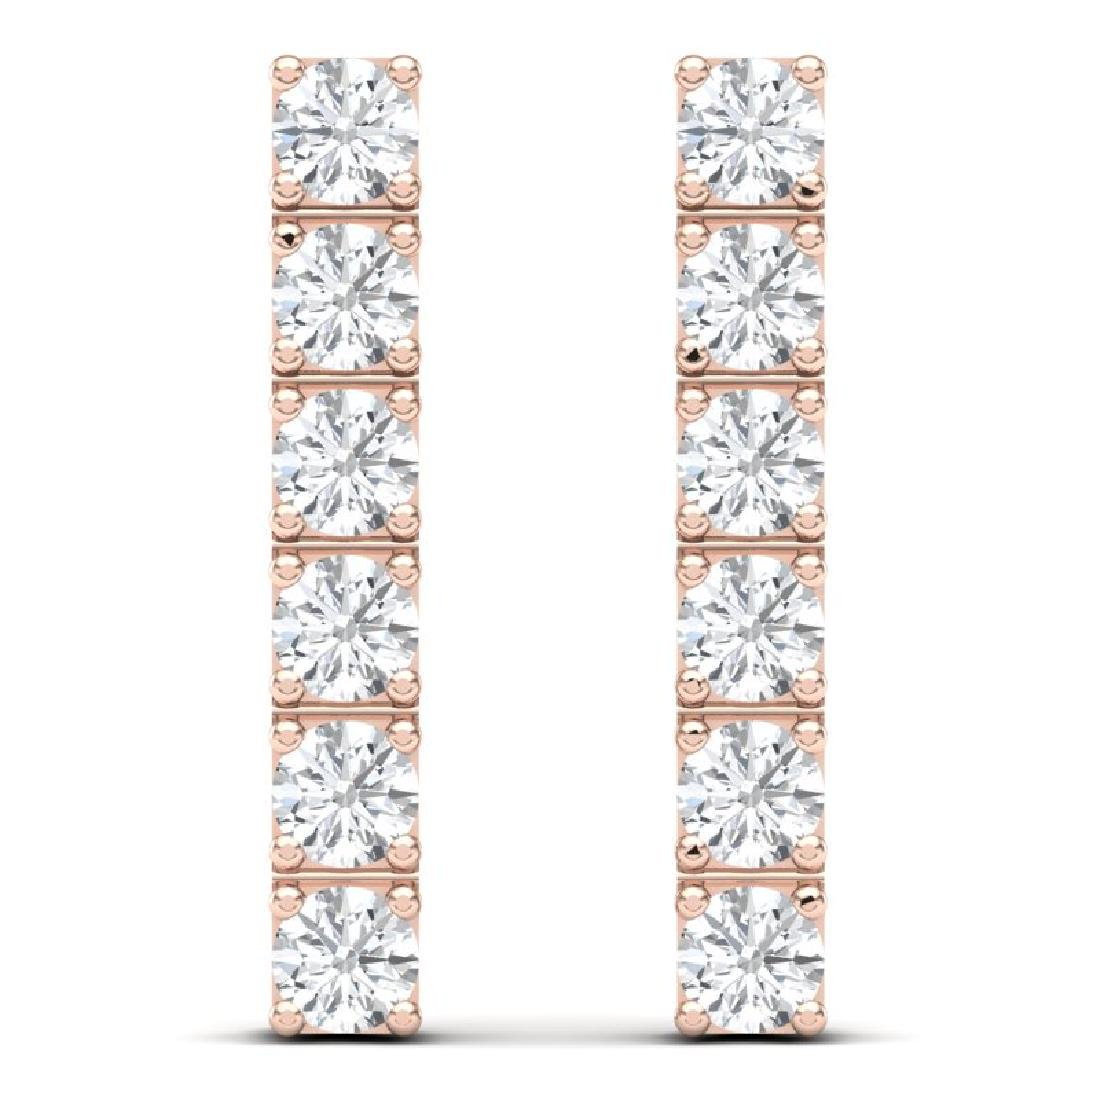 6 CTW Certified SI Diamond Earrings 18K Rose Gold - 3